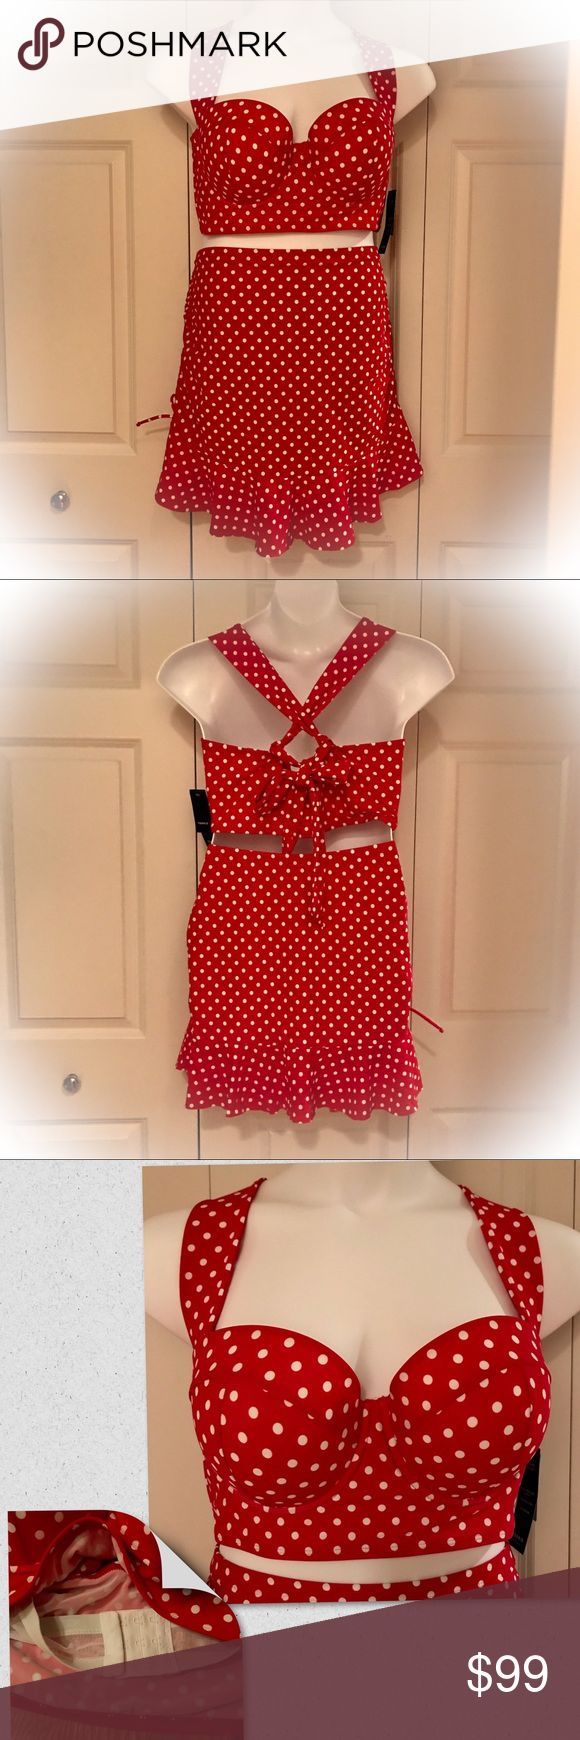 """✳️ NWT! Torrid Dot Swimsuit NWT! Old fashion style swimsuit in fun red with white polka dots. Molded cup push-up bra with adjustable tie straps and interior regular bra hook closure for a perfect fit. High waisted skirt that conceals and flatters hips, with adjustable length due to a drawstring on each side. Waist 18"""", length 19"""" (at longest) including a 5"""" ruffle. BRAND NEW from last summer, bought at full price. torrid Swim"""